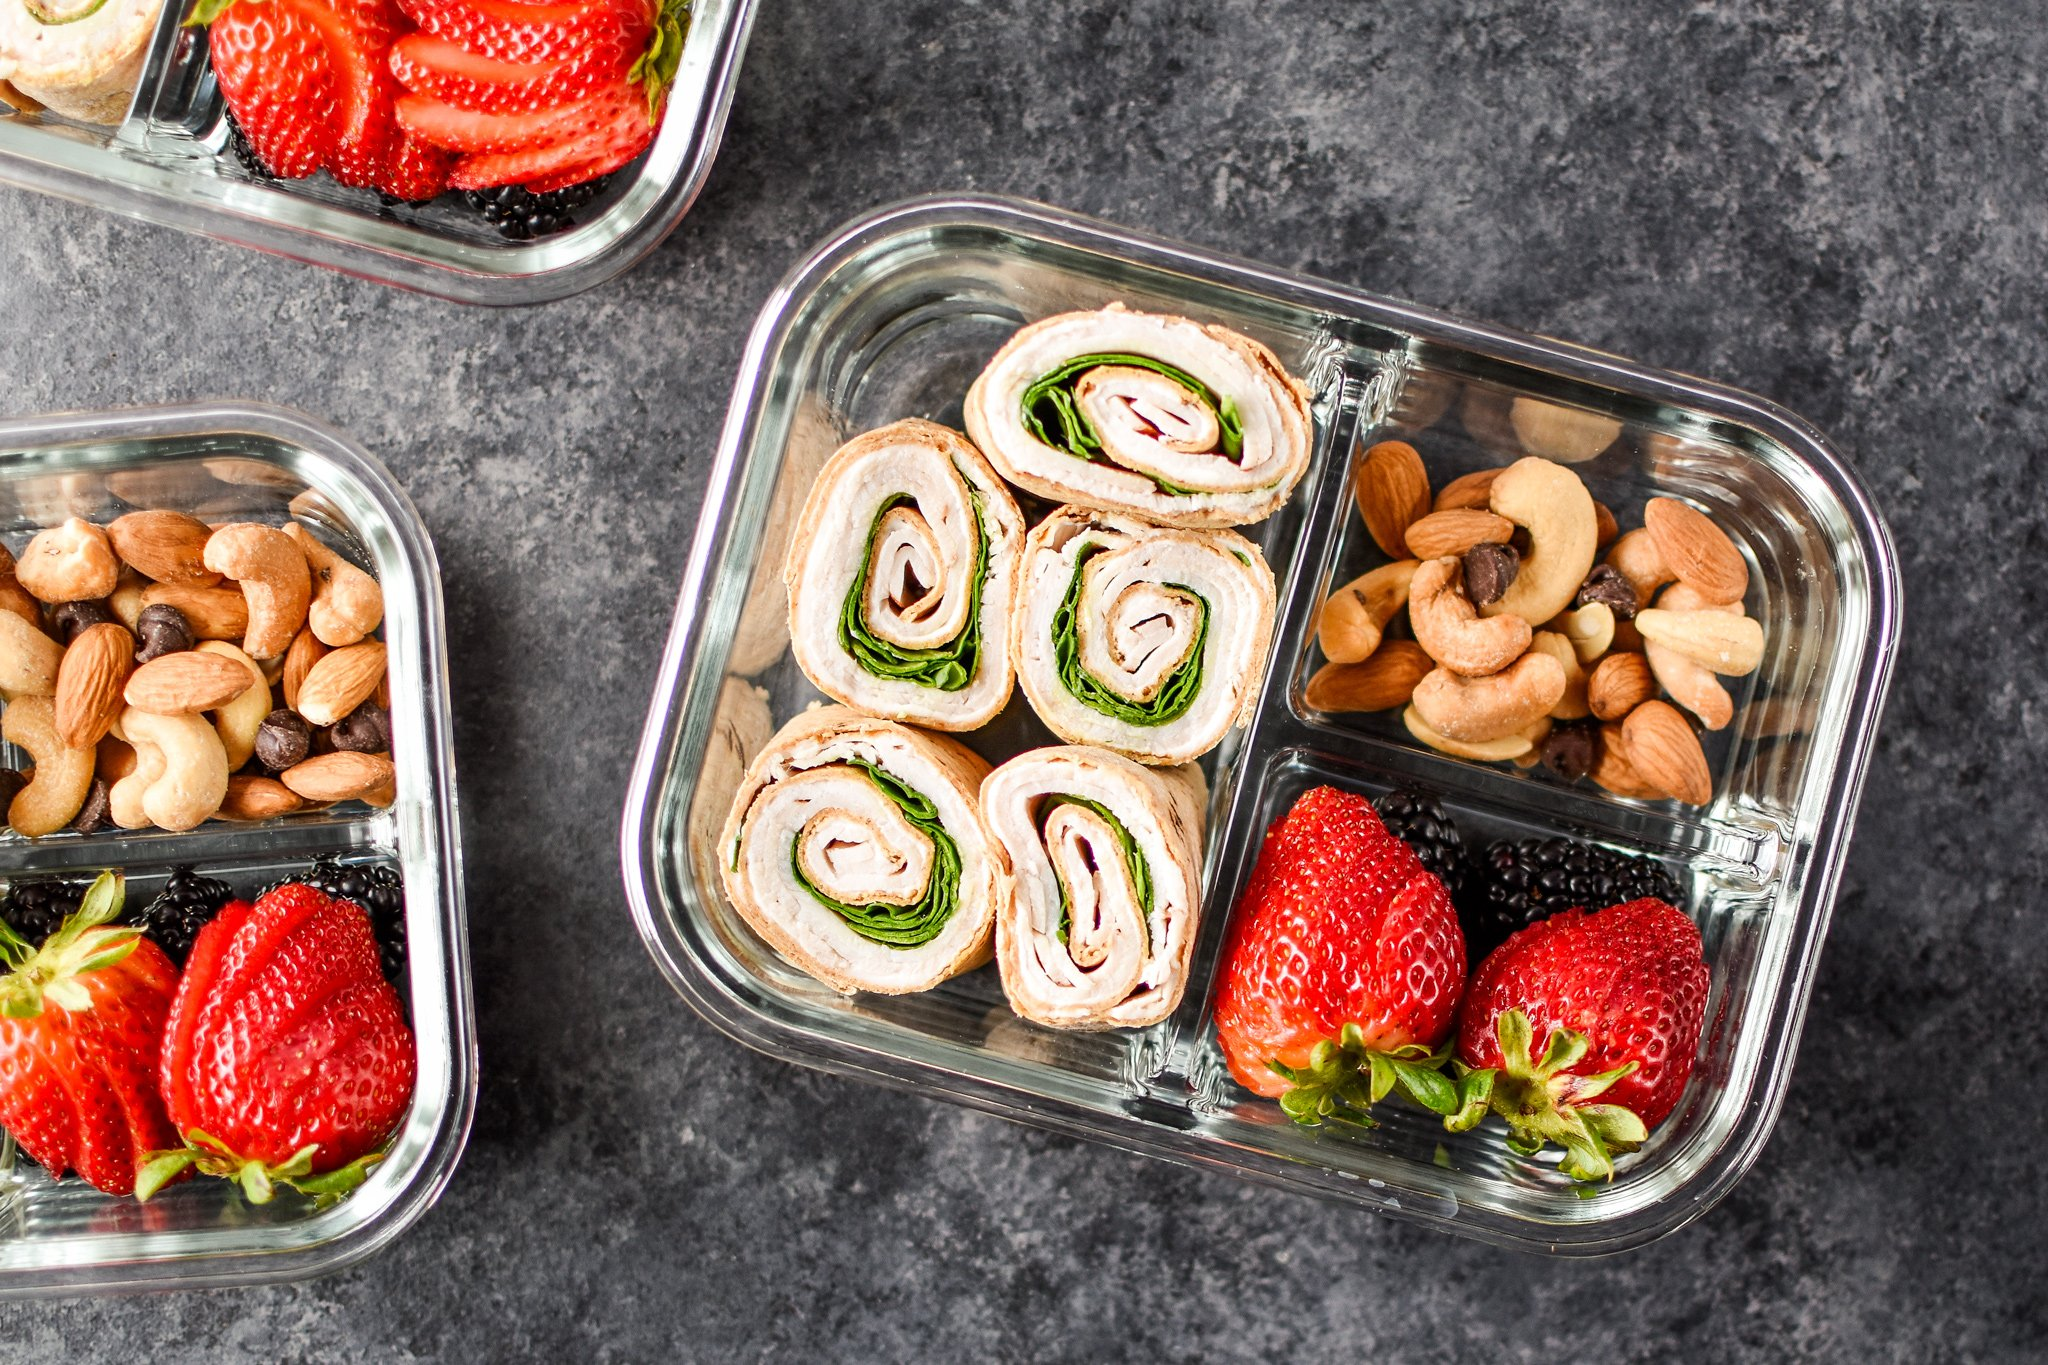 A view of the Easy Turkey Pinwheel Meal Prep from above with berries and nuts.